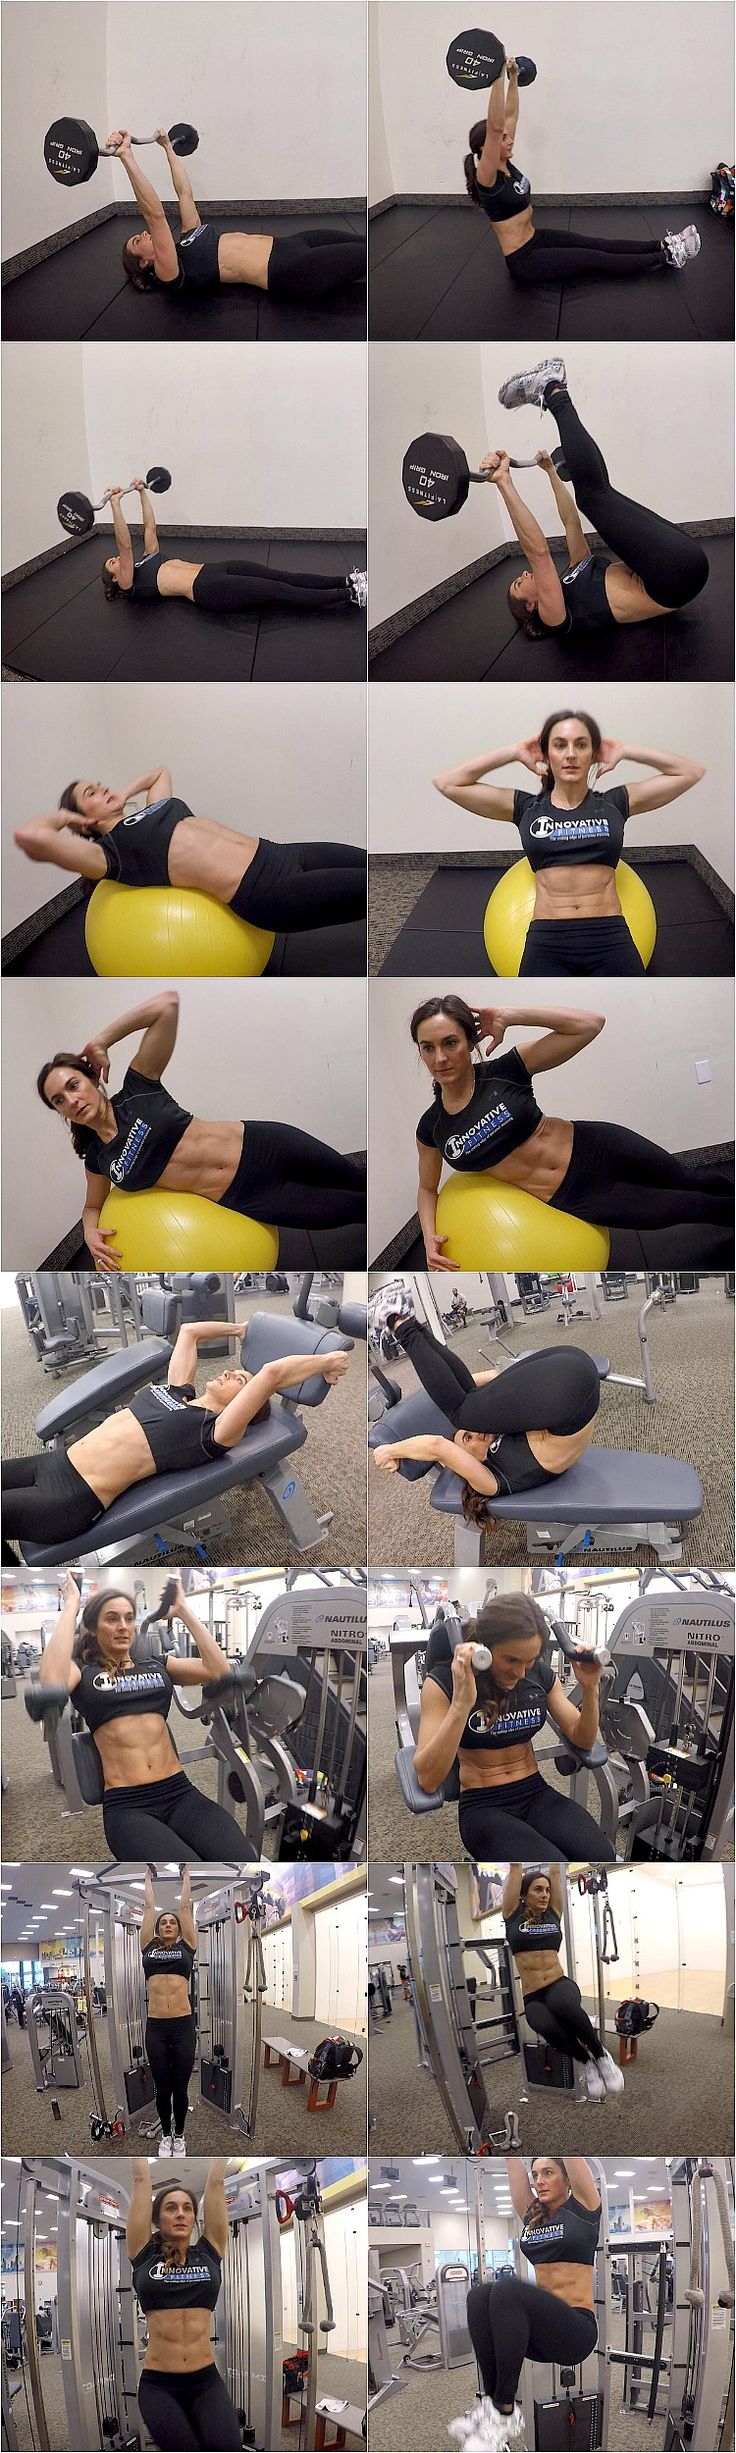 10 WEEKS TO FITNESS-DAY 41: ABS